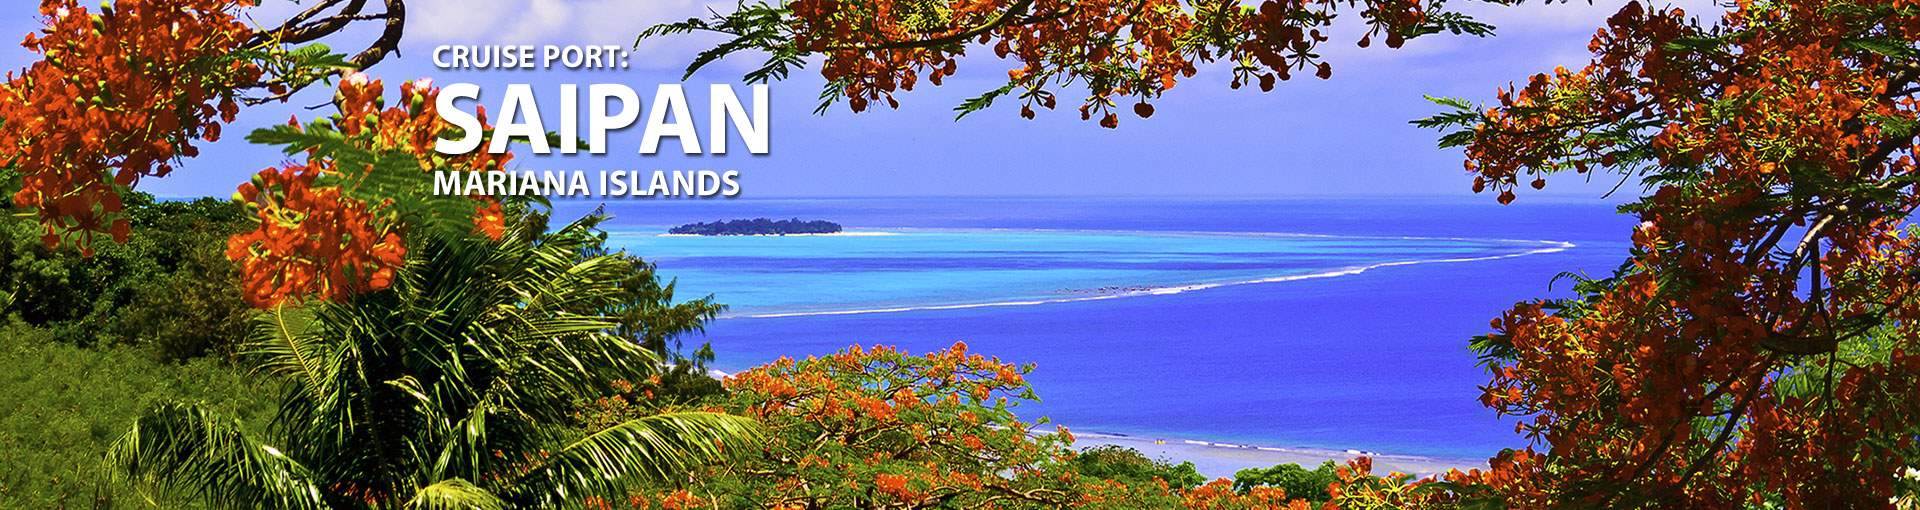 Cruises to Saipan, Mariana Islands